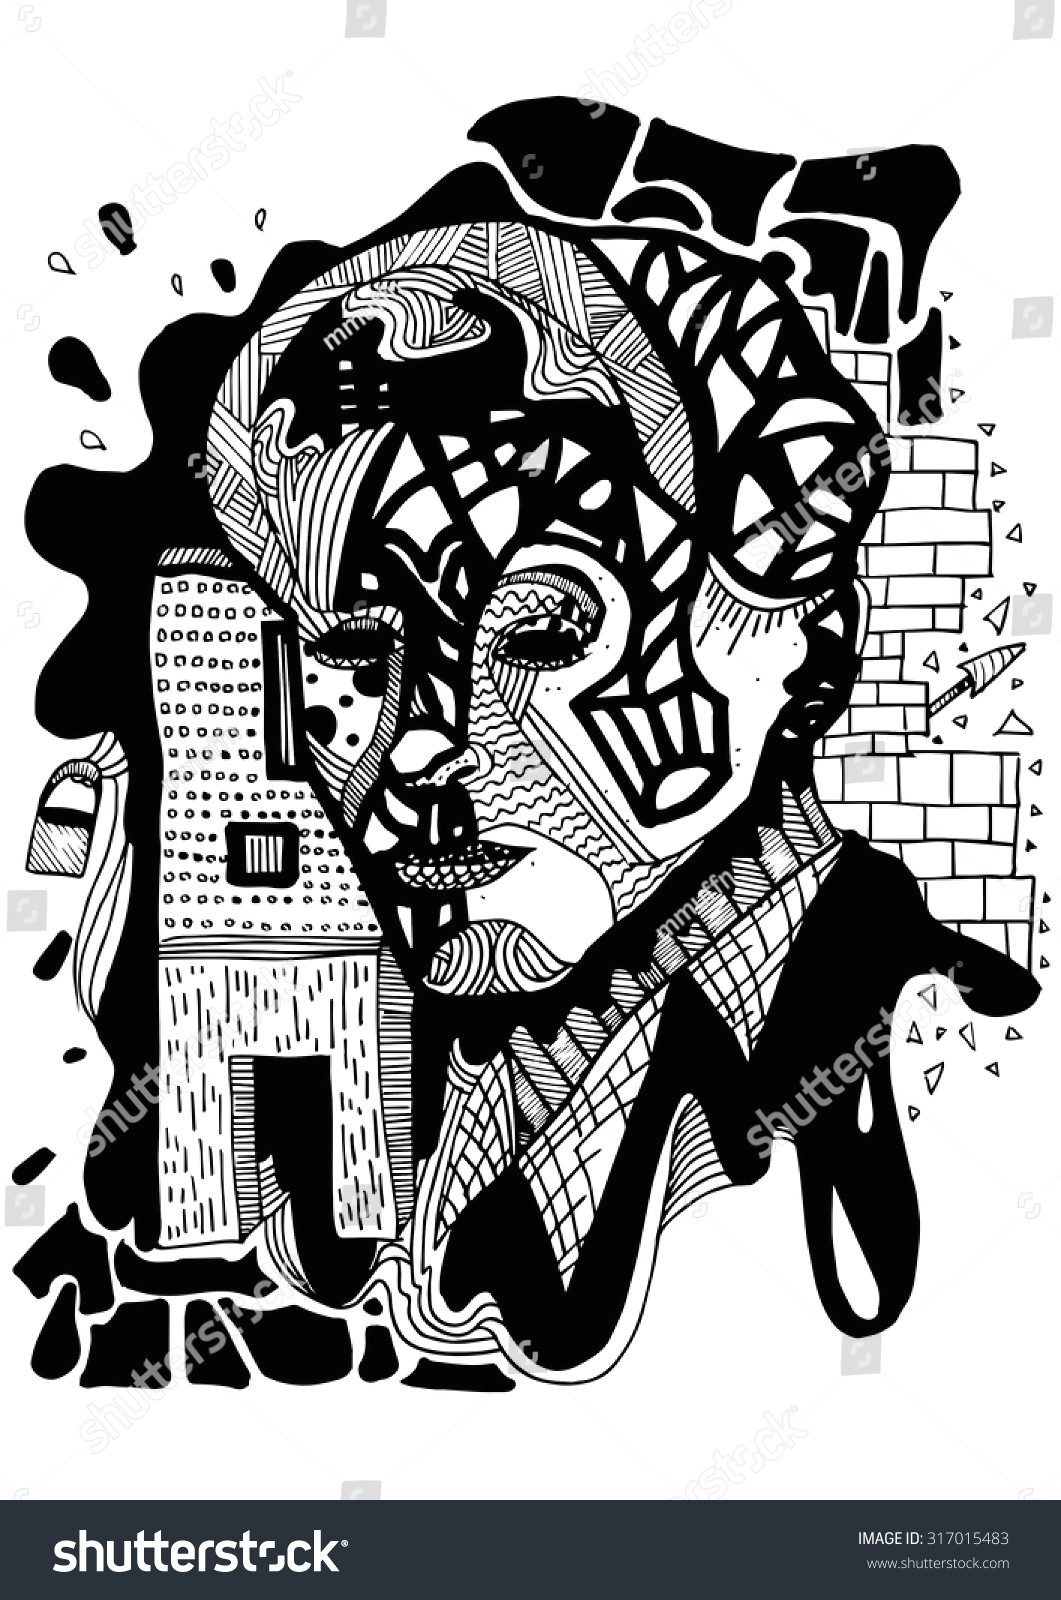 abstract abstraction art arts man men black white drawing drawings sketch sketches illustration illustrations city building